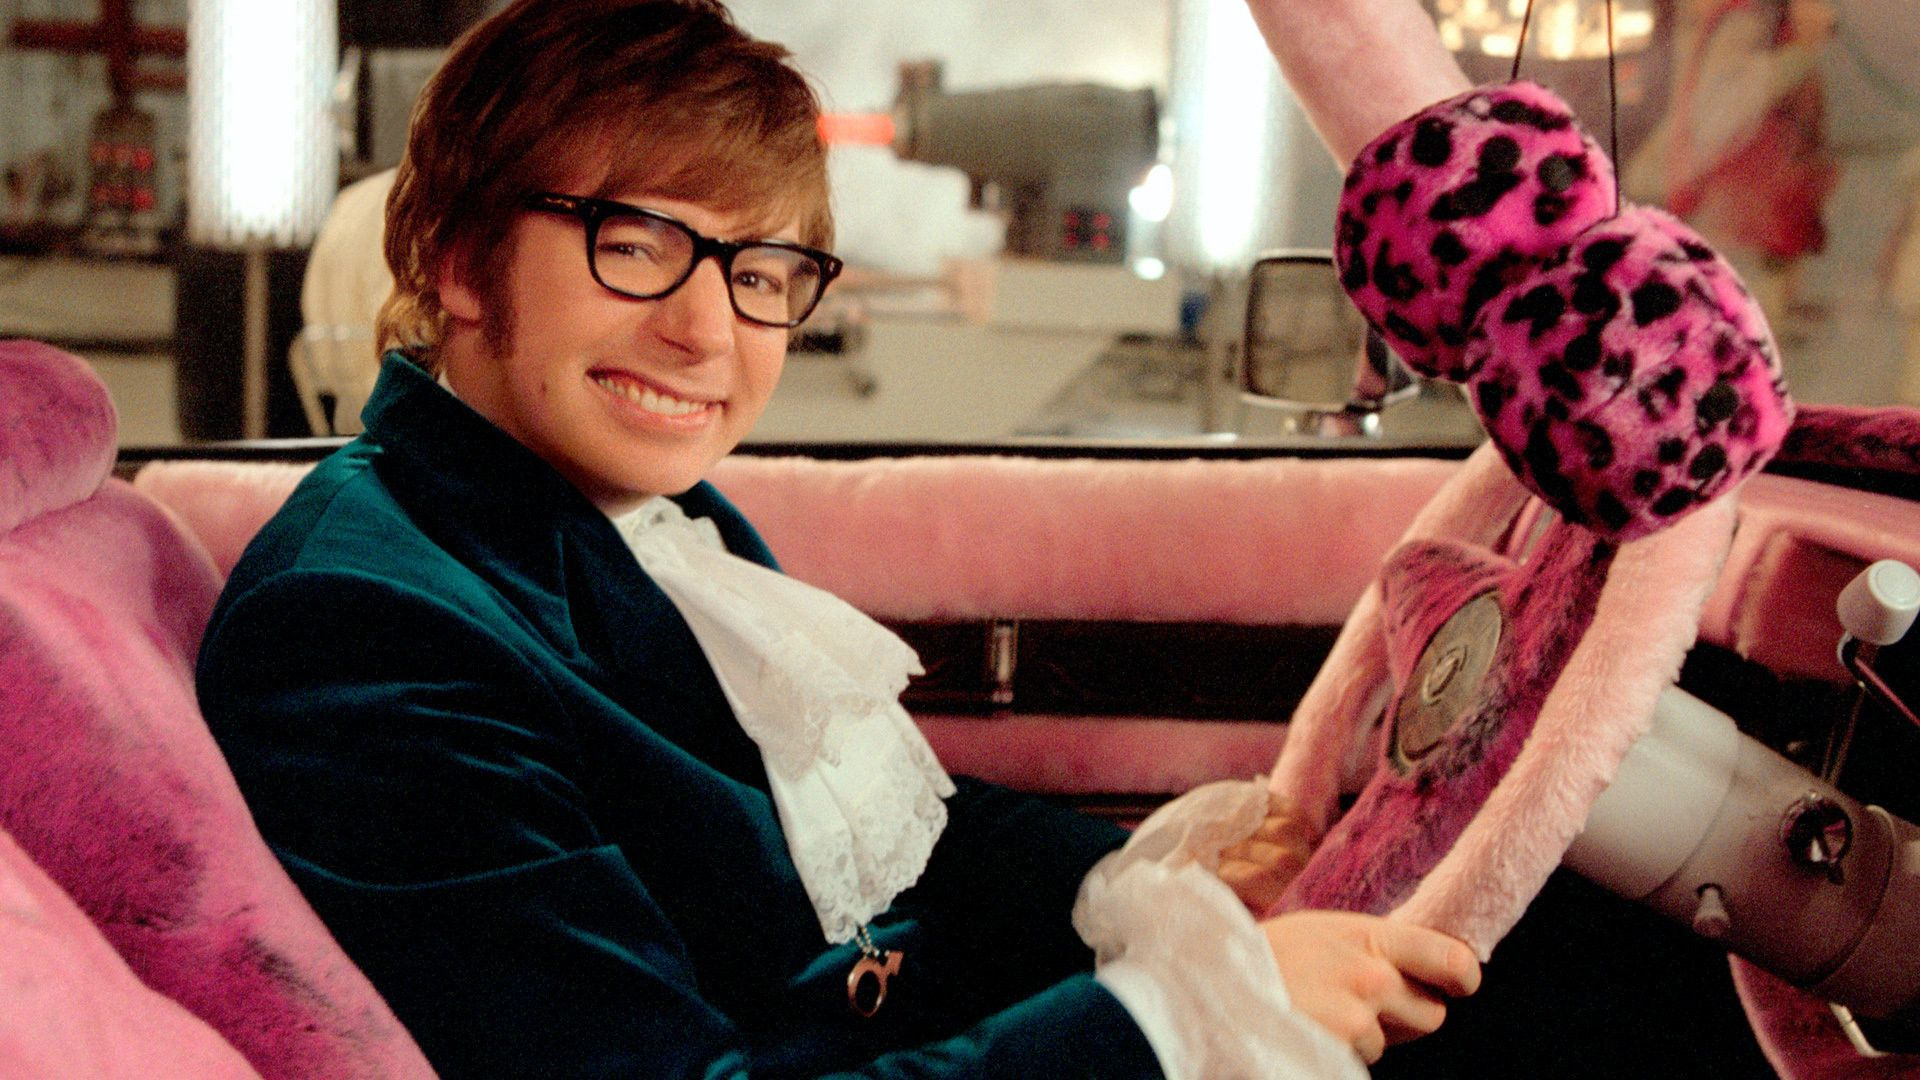 Very shagadelic baby, yeah! Austin powers, Best actor